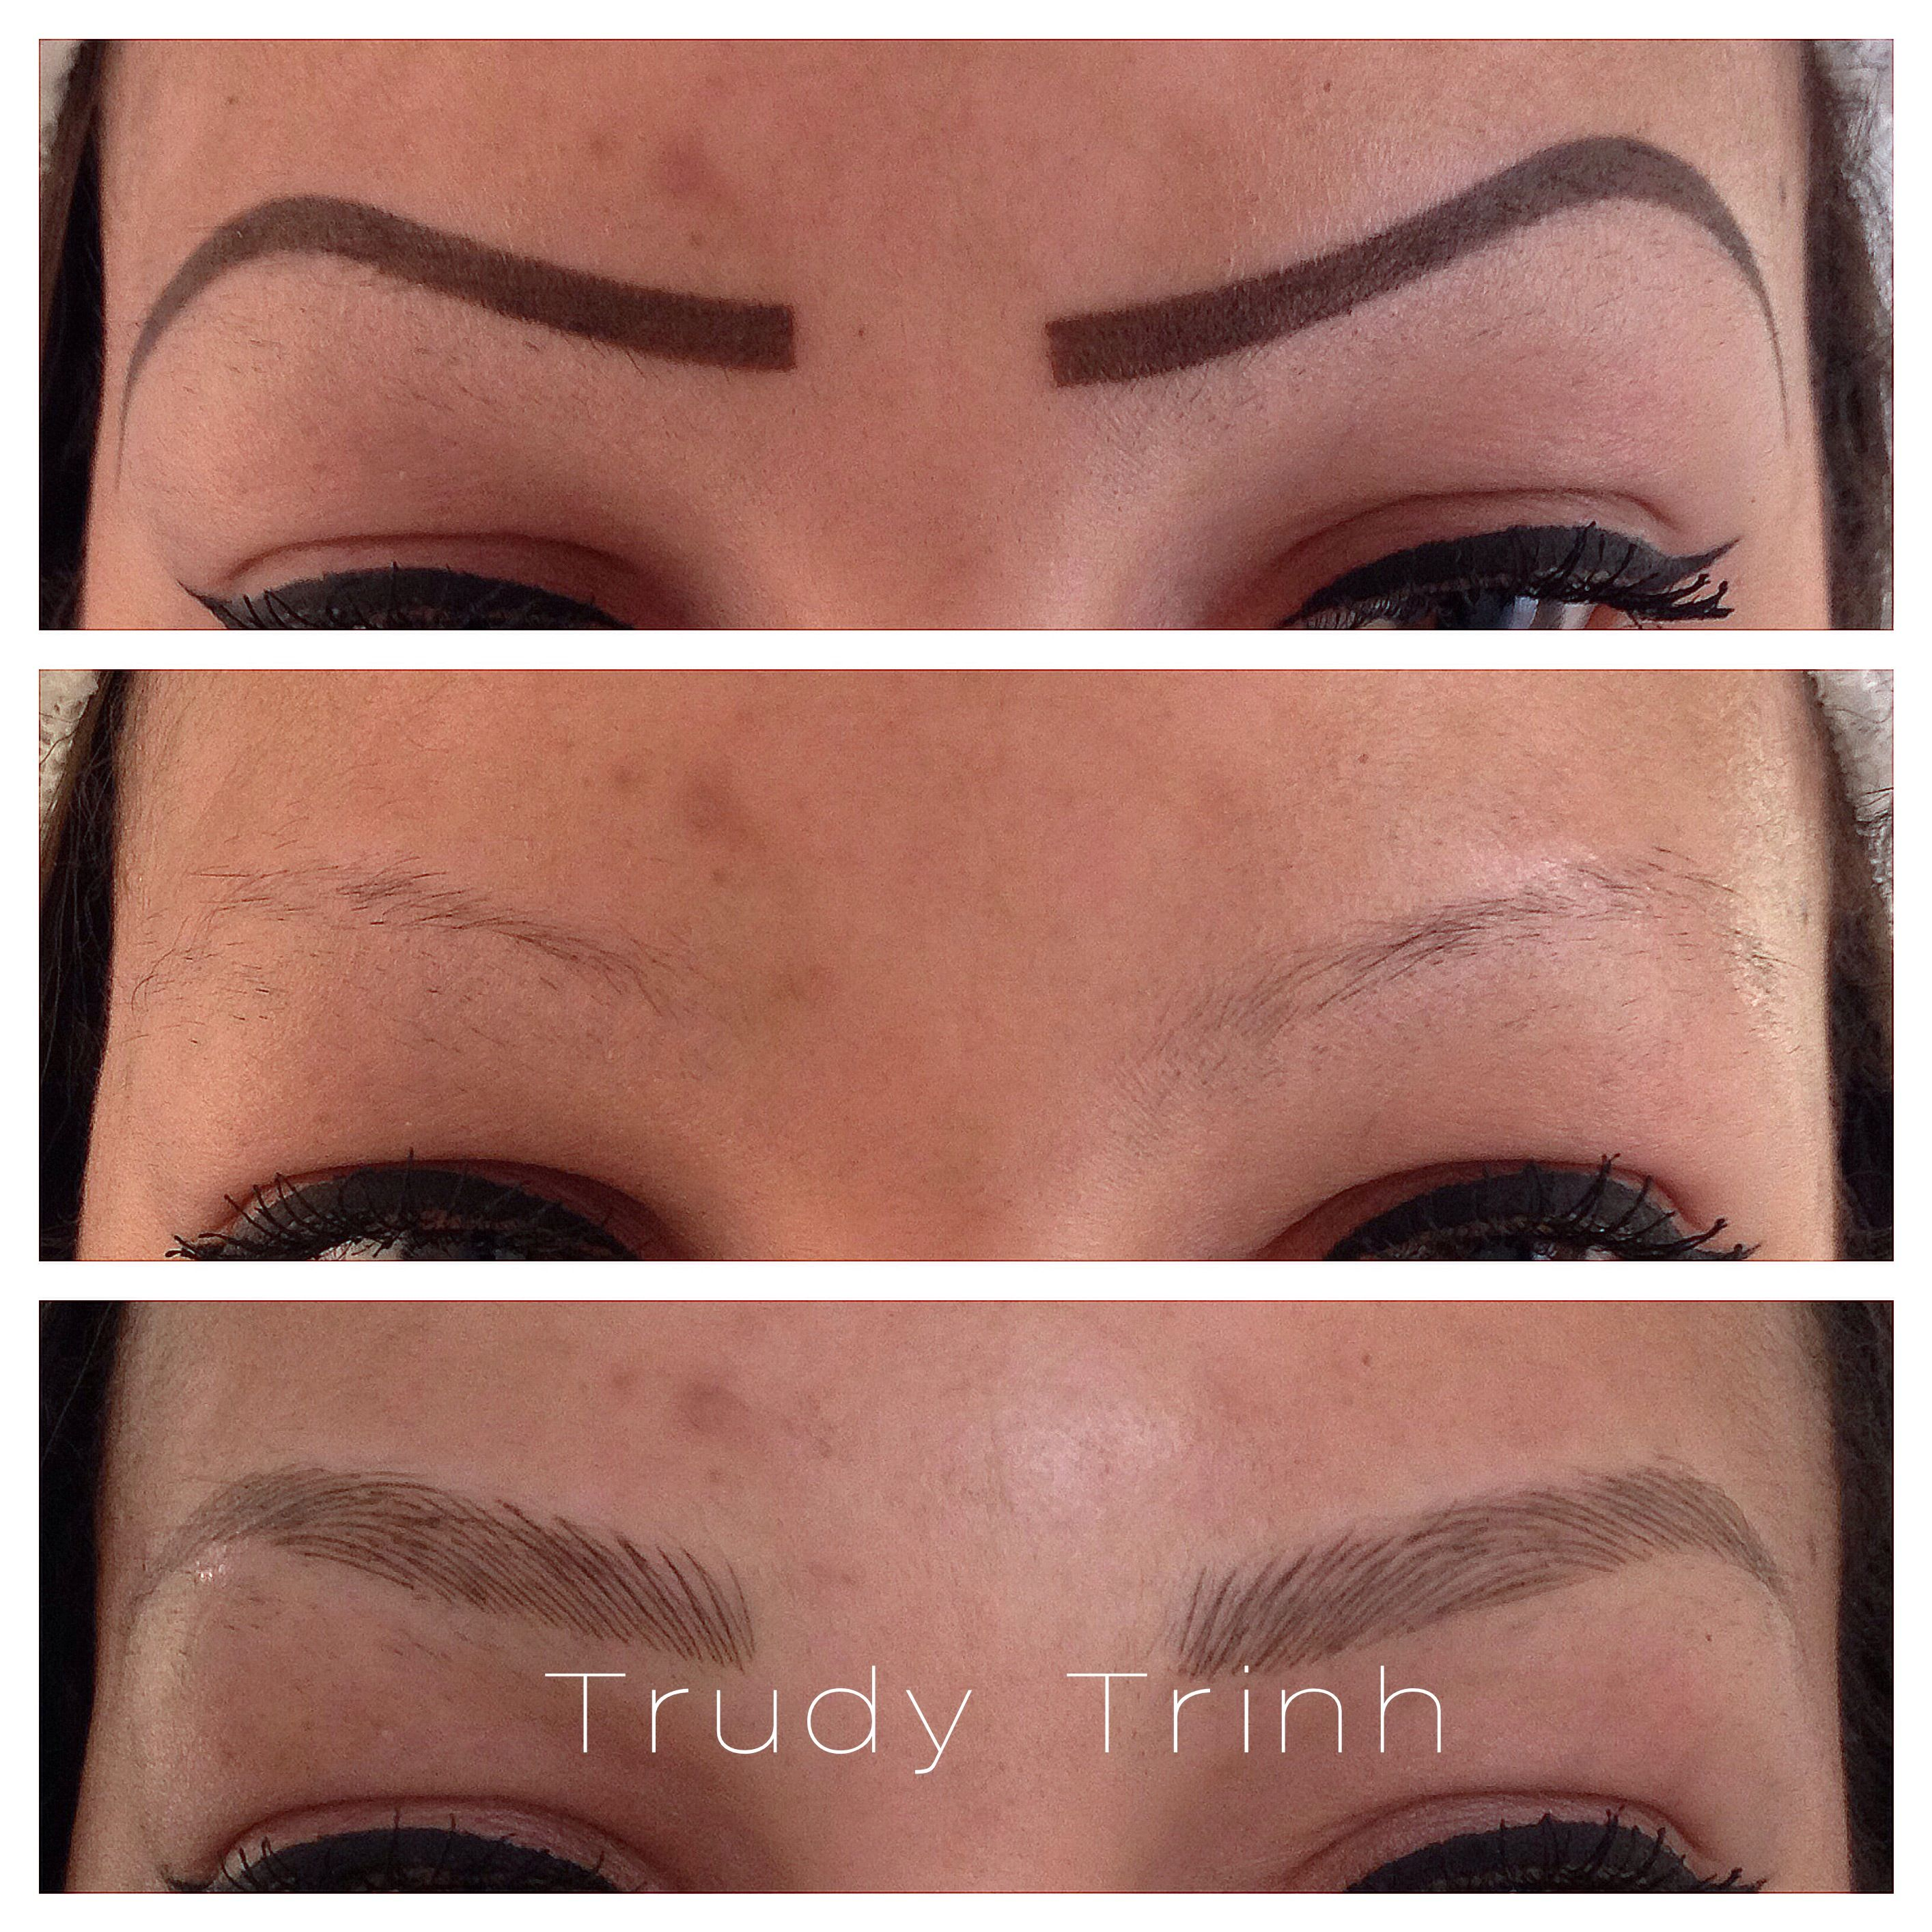 Microblading VS Eyebrow Tattooing - 4 Differences - DFW Microblading